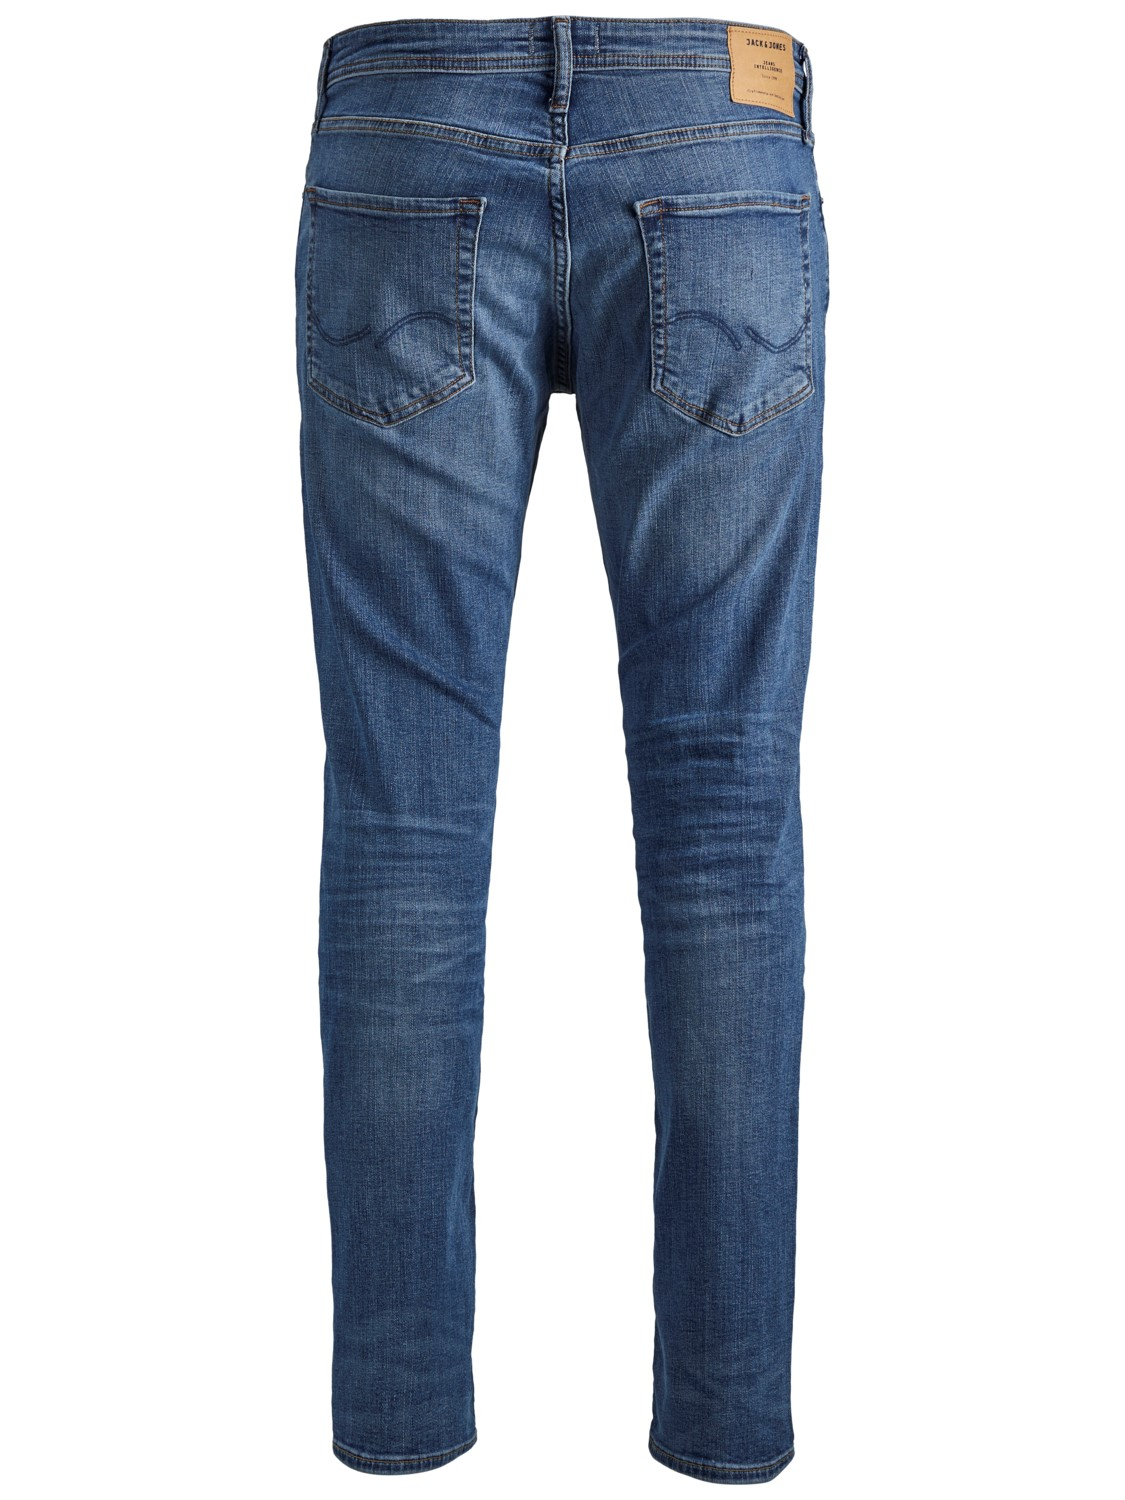 jack-jones-herren-jeans-jjitim-jjoriginal-am-781-50sps-slim-fit-blau-blue-denim